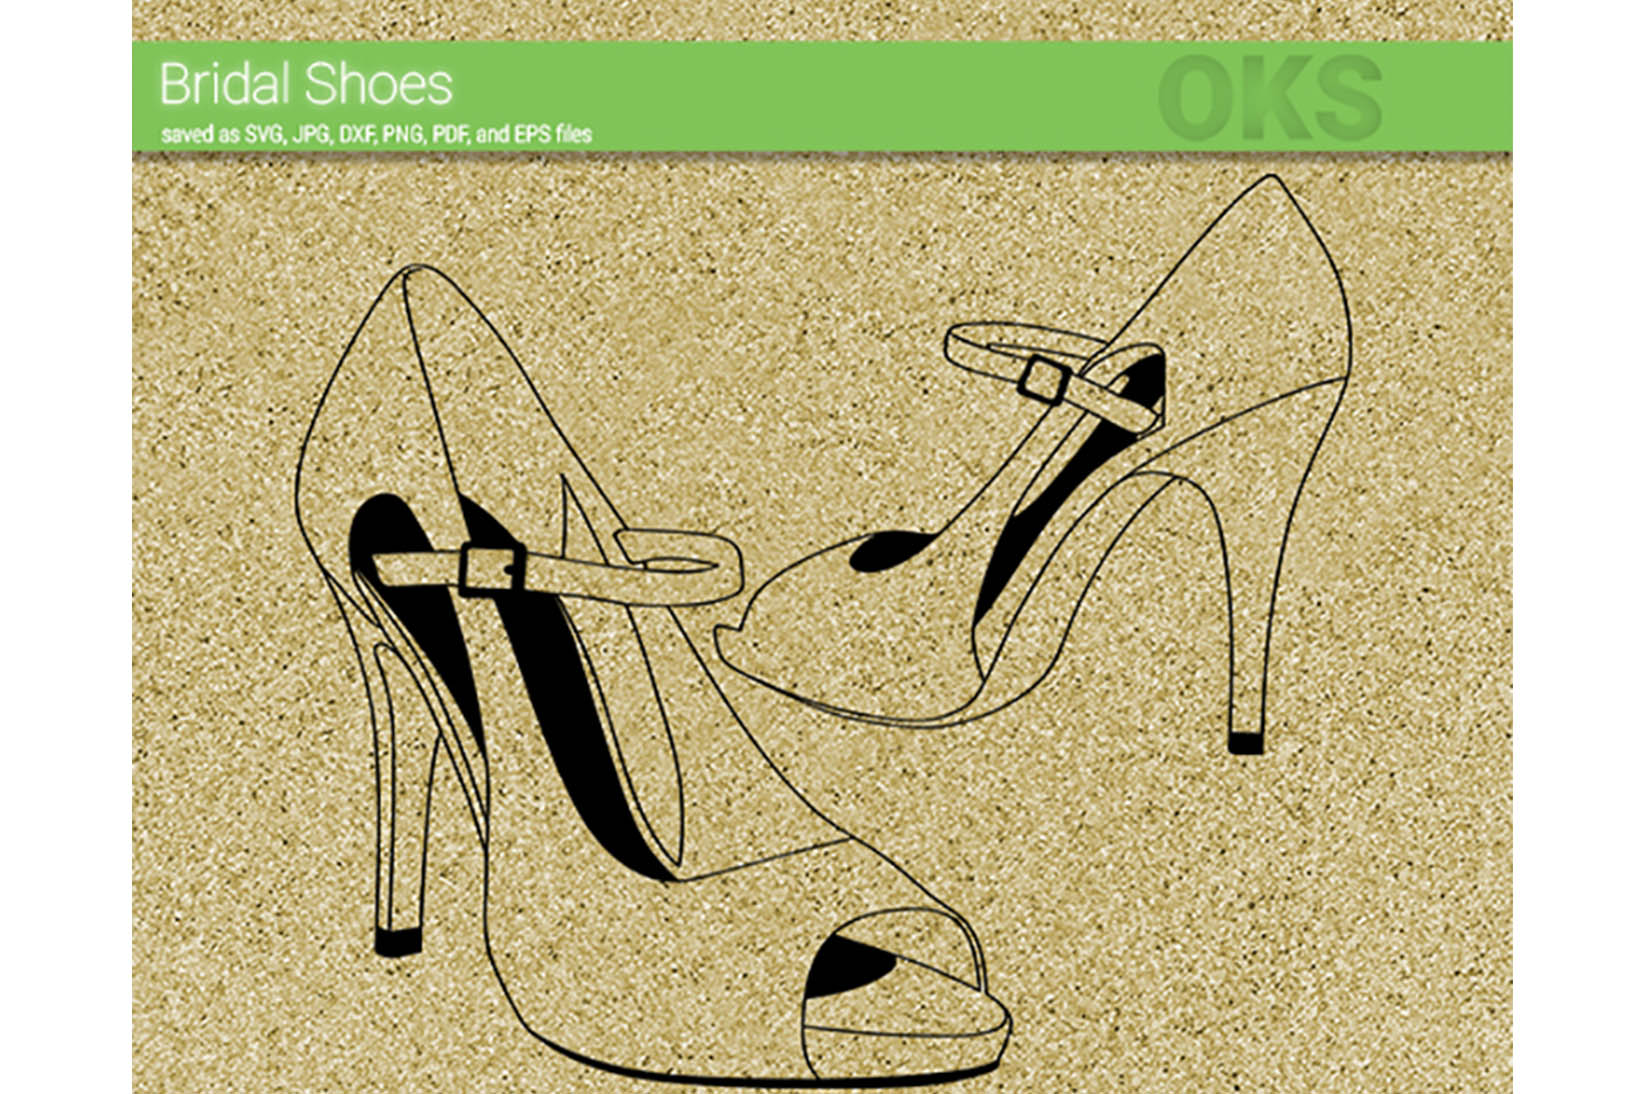 96cb97a7c6f3b High Heels, Wedding Shoes Svg Vector